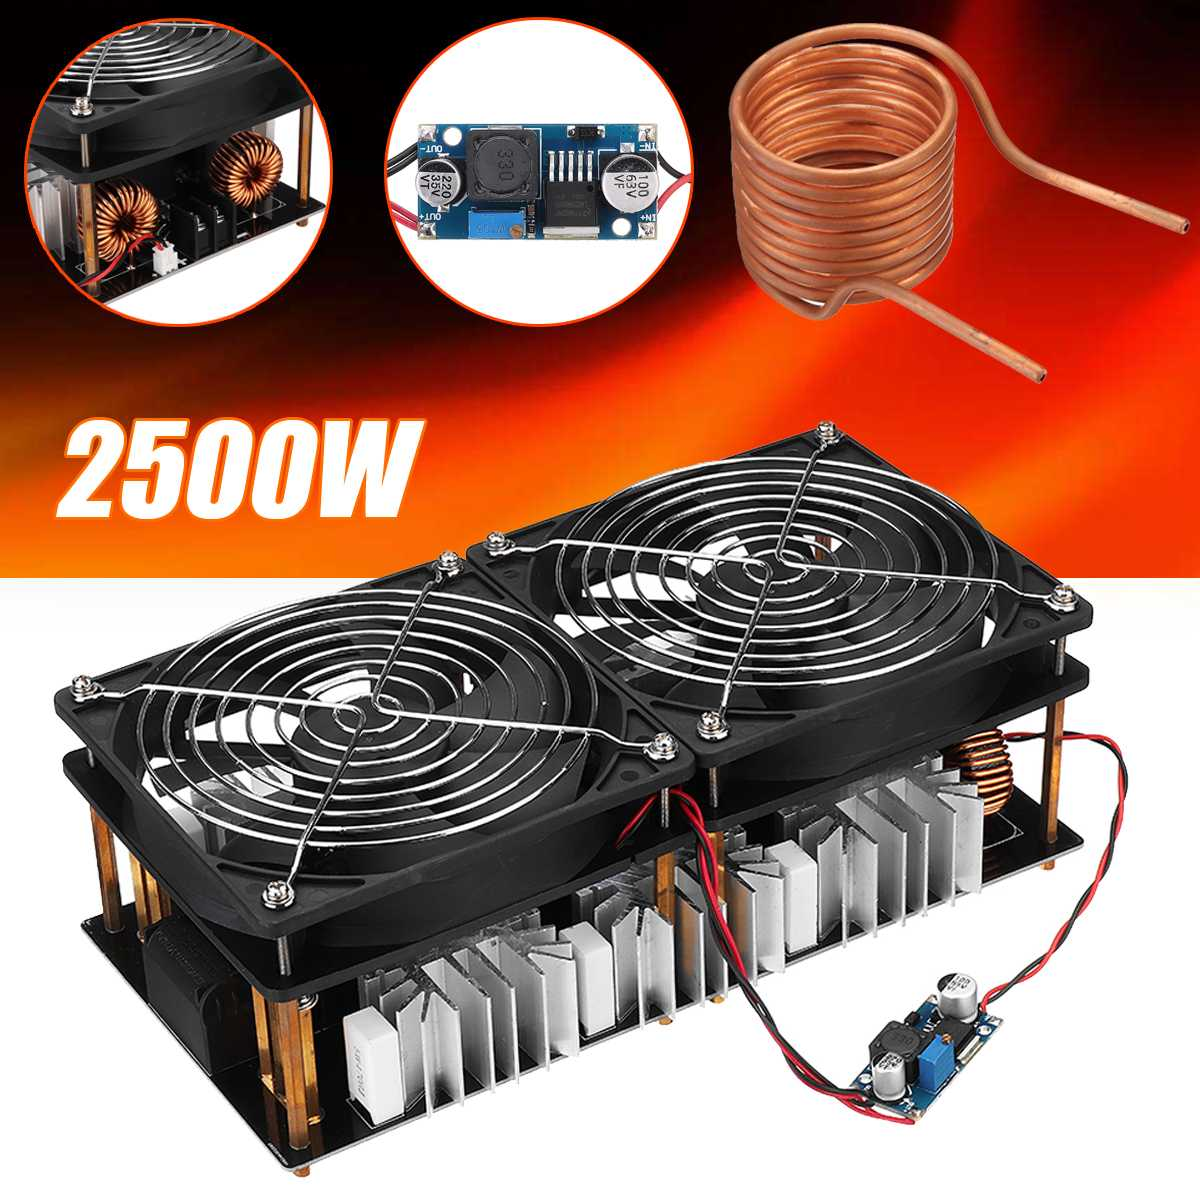 2500w Induction Heater Pcb Board Module Flyback Driver Heater Induction Heating Machine 2500W